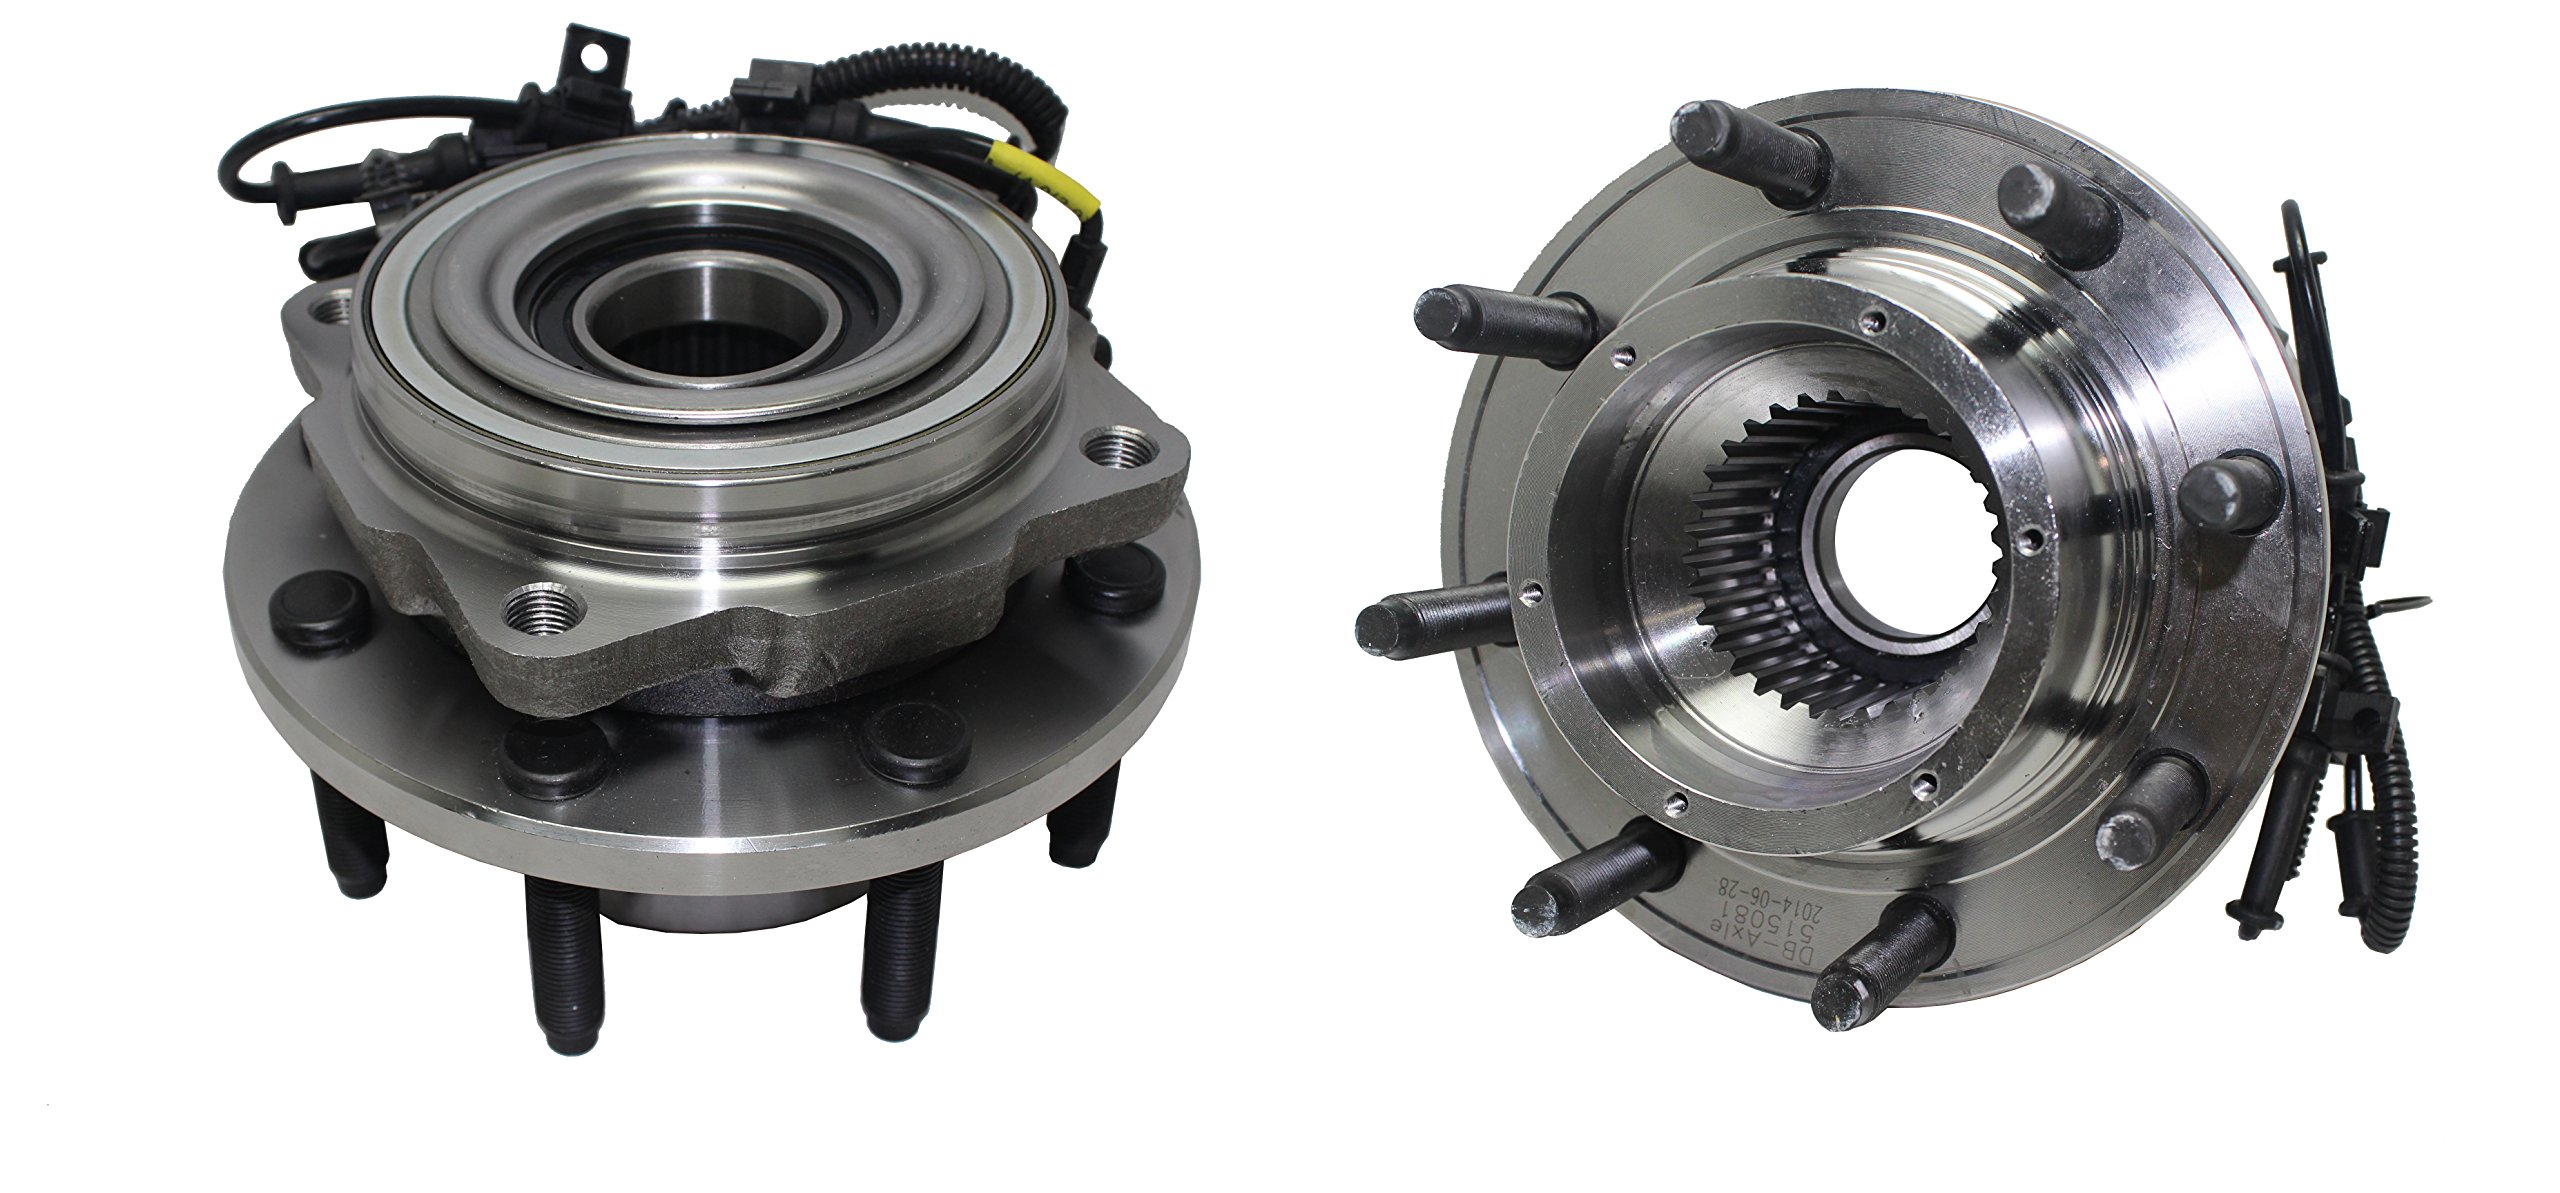 Brand New (Both) Front Wheel Hub and Bearing Assembly [SINGLE REAR WHEEL] F250/350/450/550 Super Duty Super Duty 4WD 8 Lug W/ ABS (Pair) 515081 x2 by Detroit Axle